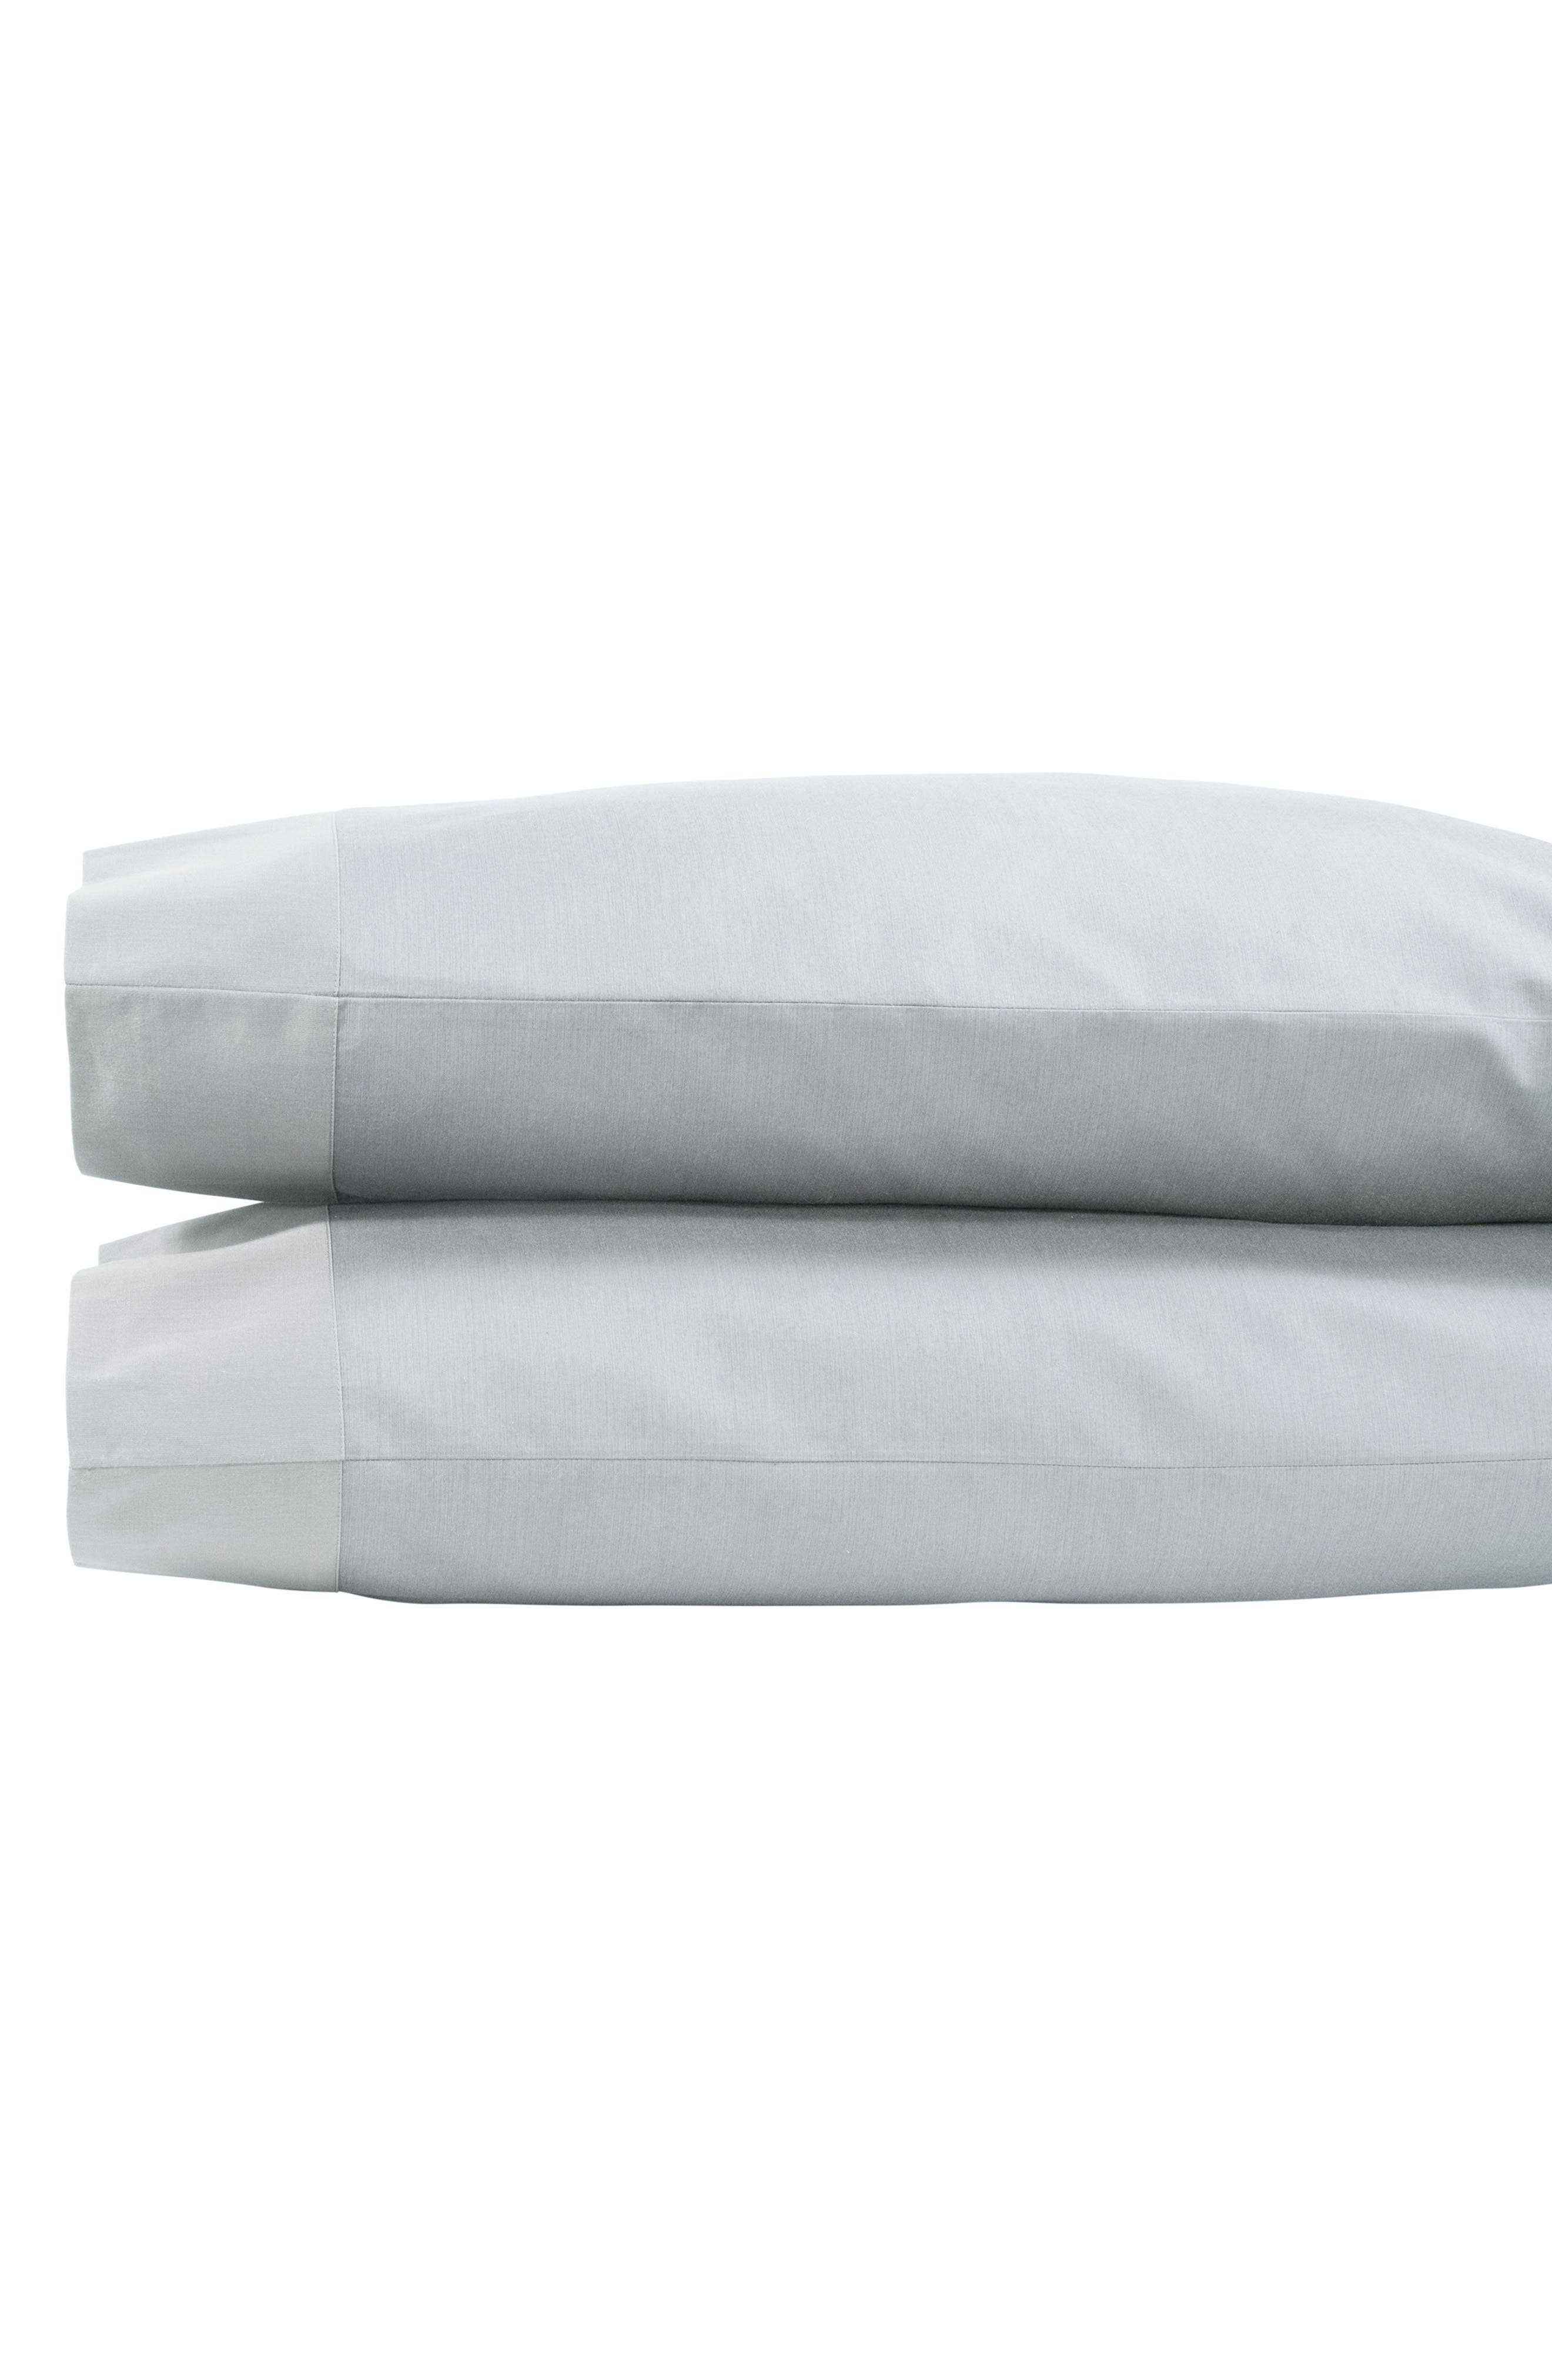 Striated Band 400 Thread Count Pillowcases,                             Main thumbnail 1, color,                             GRAY